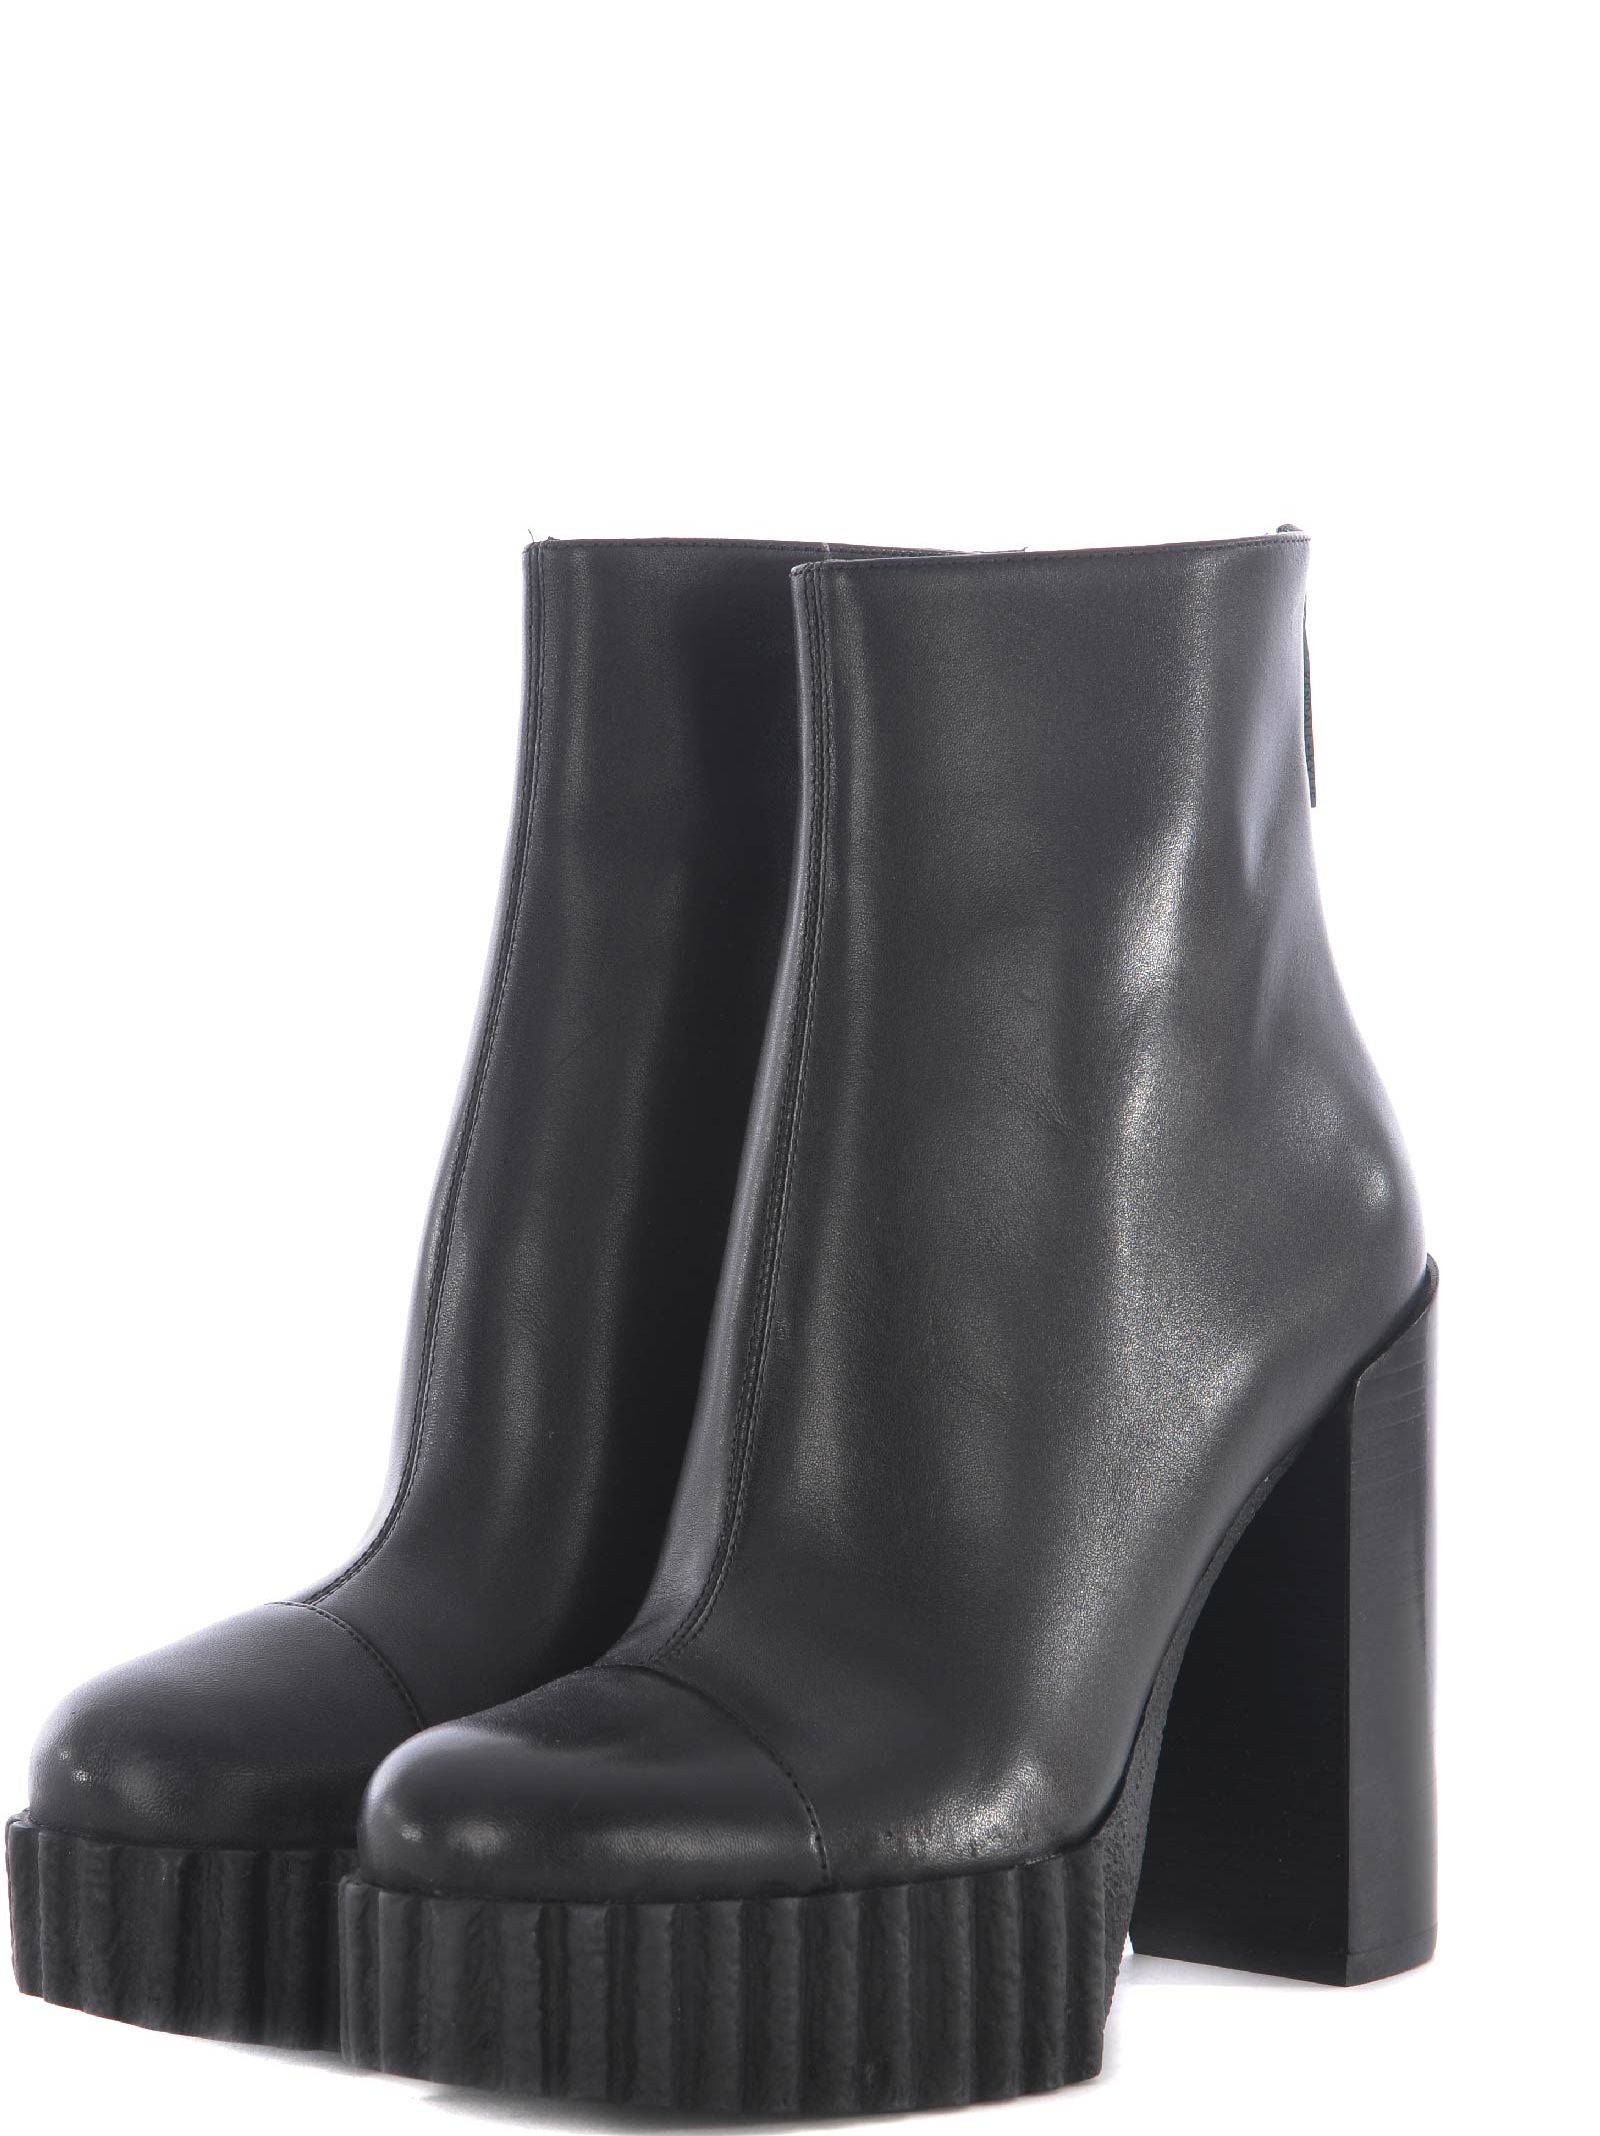 kendall + kylie -  Cadence Ankle Boots